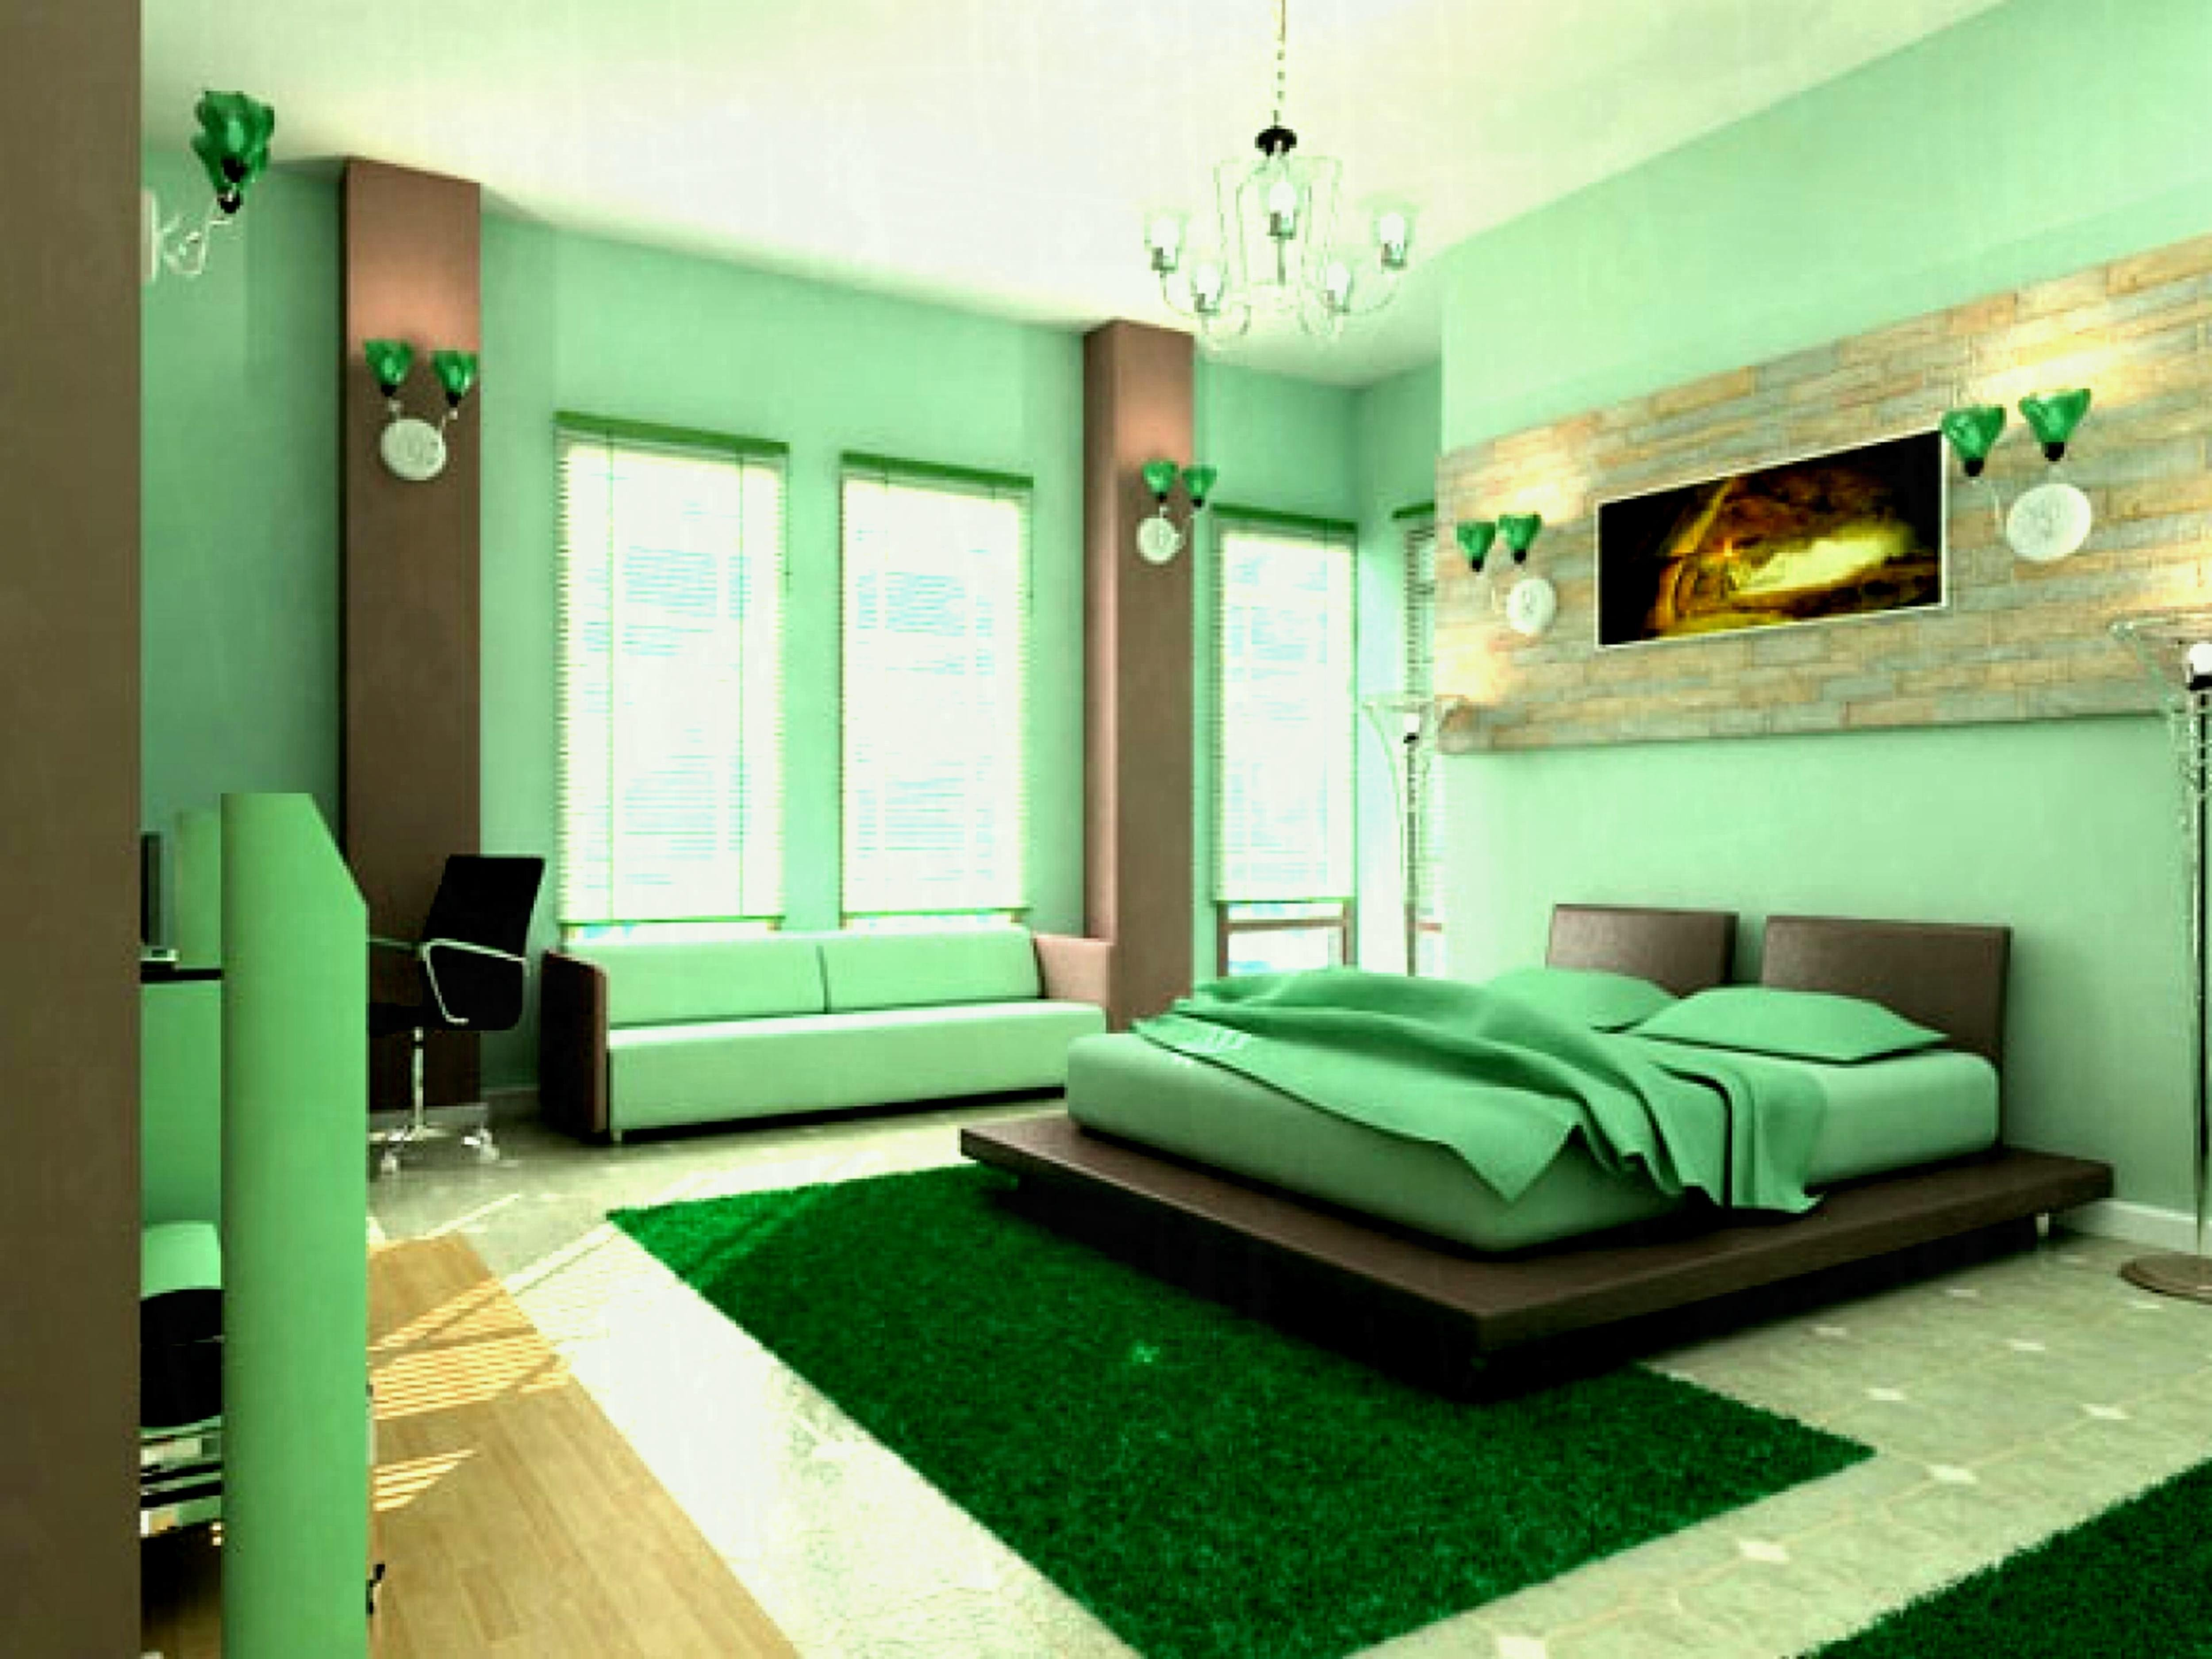 10 Cute Ideas For Painting A Room paint color ideas inspiring living room colors wall painting designs 2020